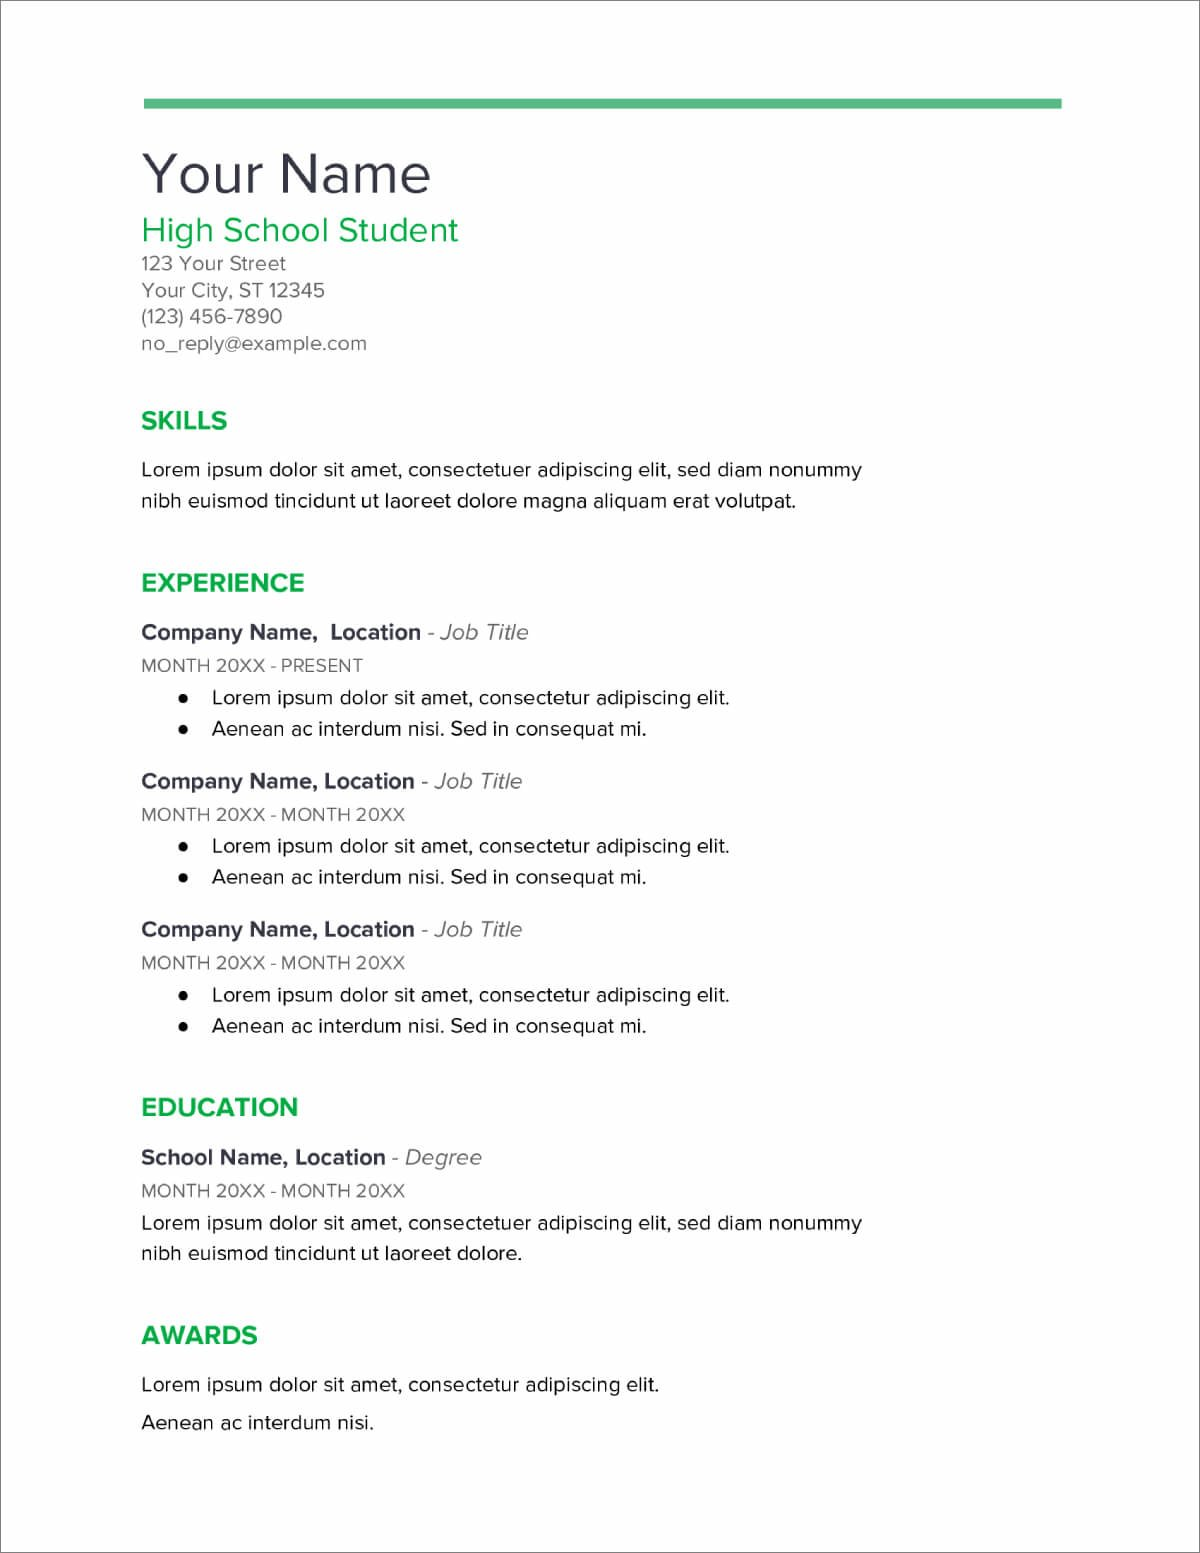 high school resume templates now job outline for students medical records objective Resume Job Resume Outline For High School Students